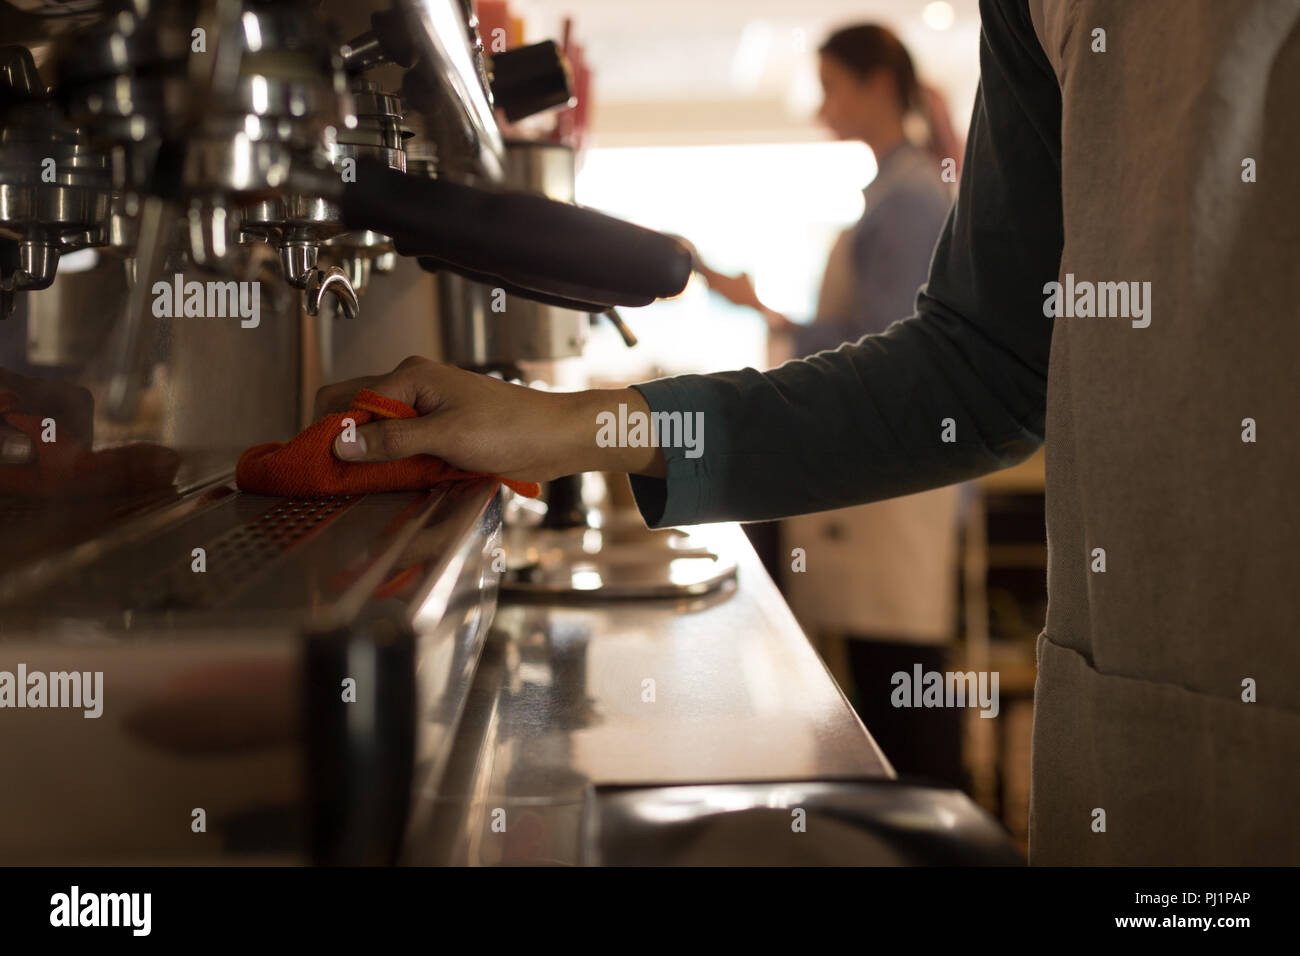 Waiter cleaning coffee machine at coffee counter - Stock Image